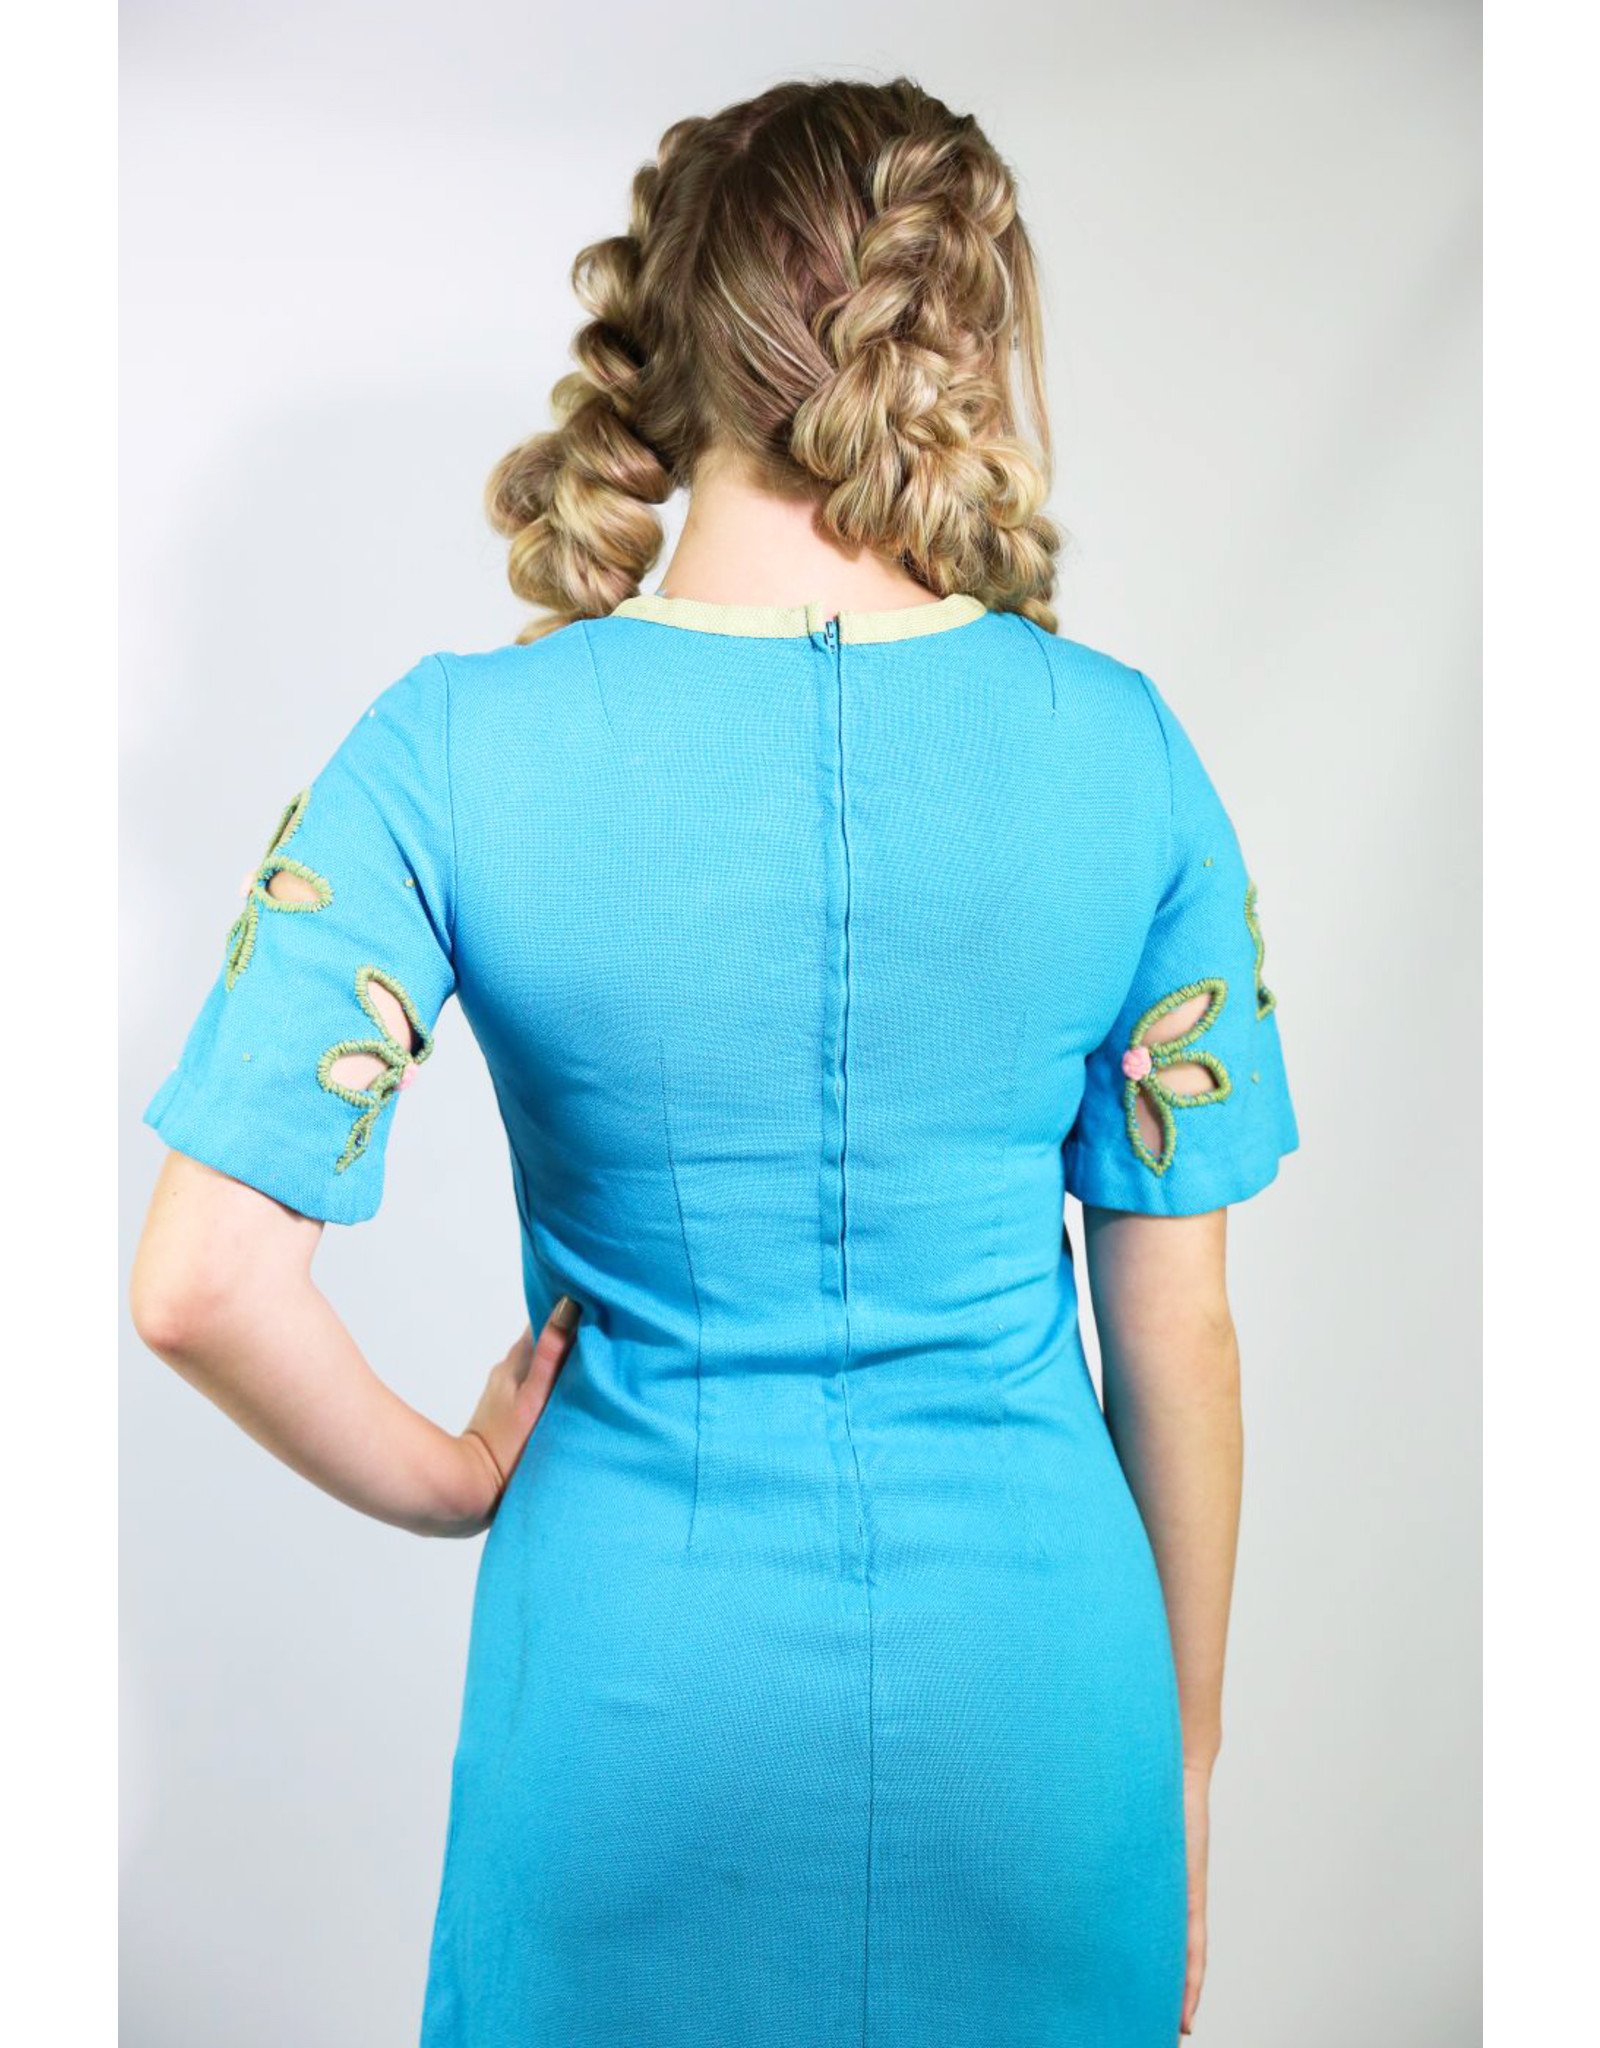 1960's Blue Day Dress with Flower Cutouts